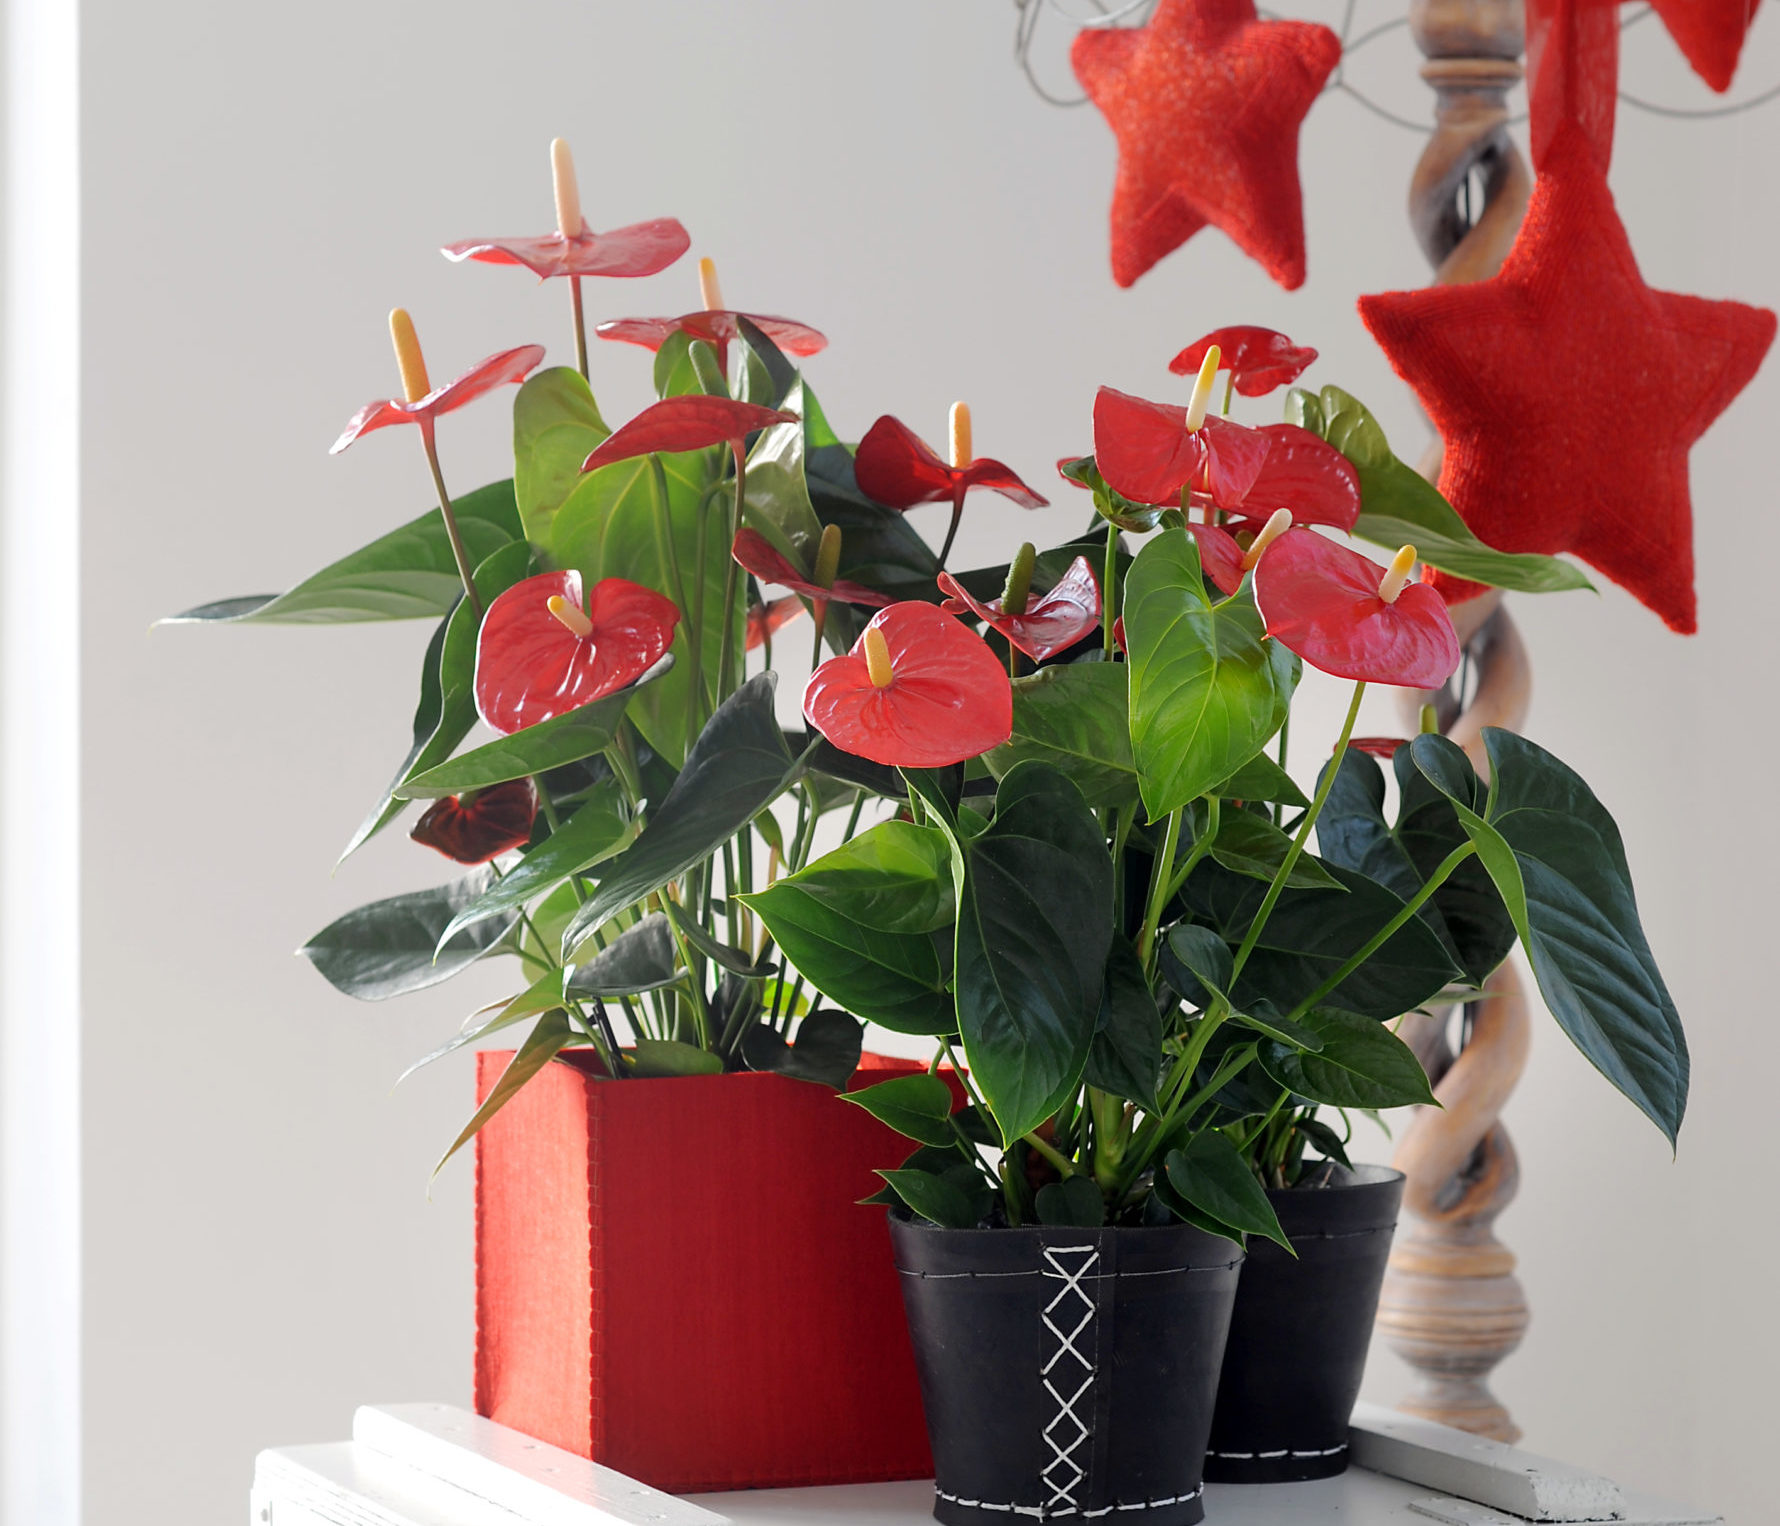 The red anthurium is the perfect Christmas flower